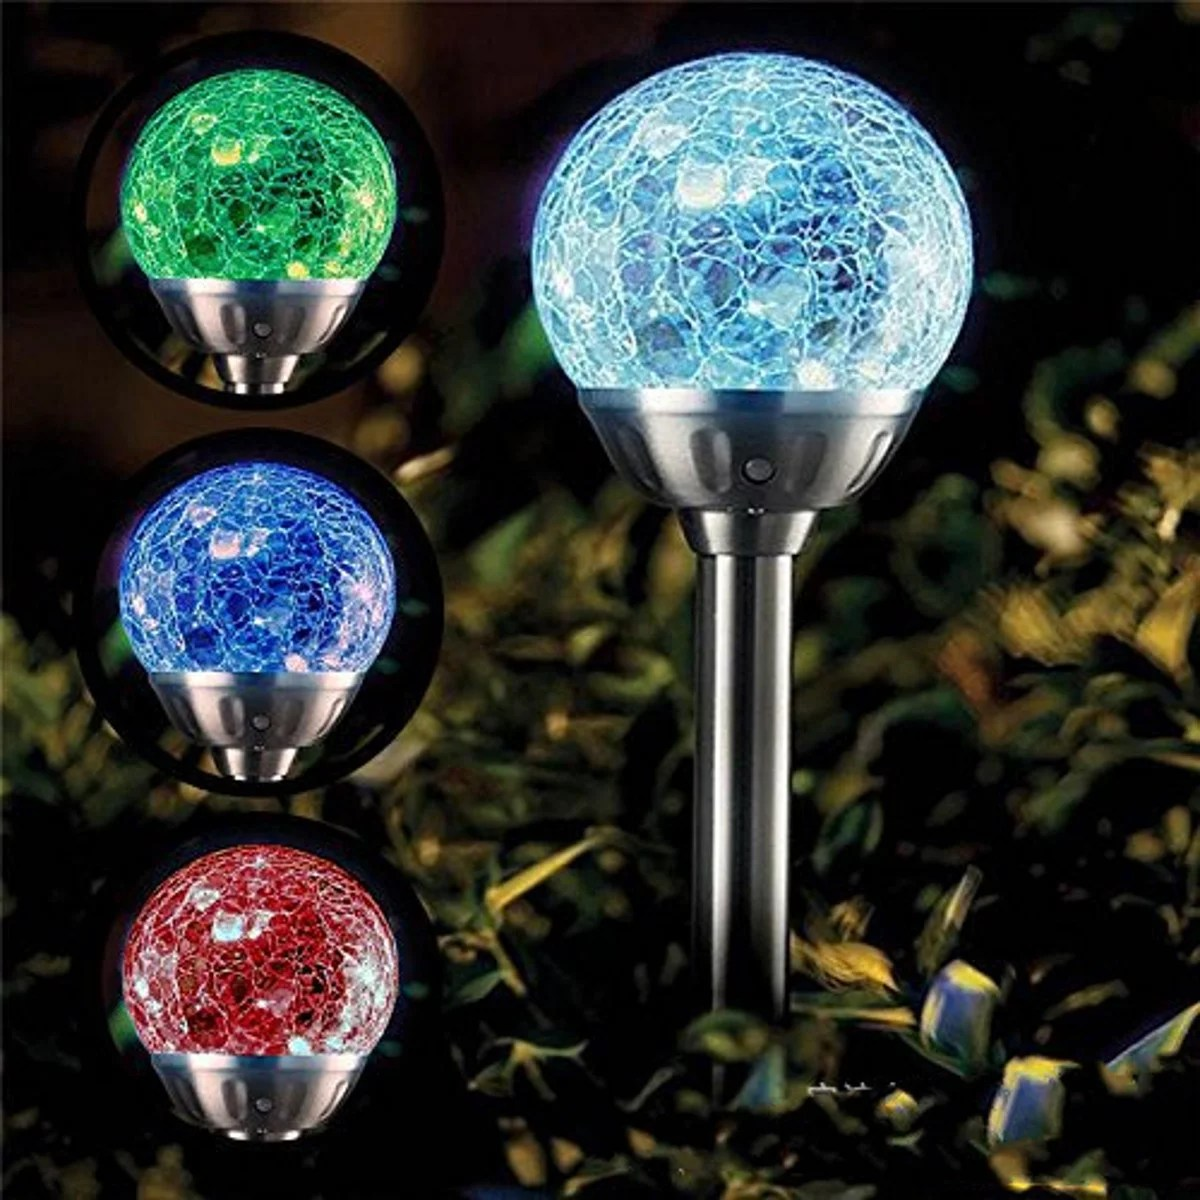 solar garden lights outdoor 4 pack solar globe light stakes color changing led landscape decorative pathway lighting auto on off dusk to dawn